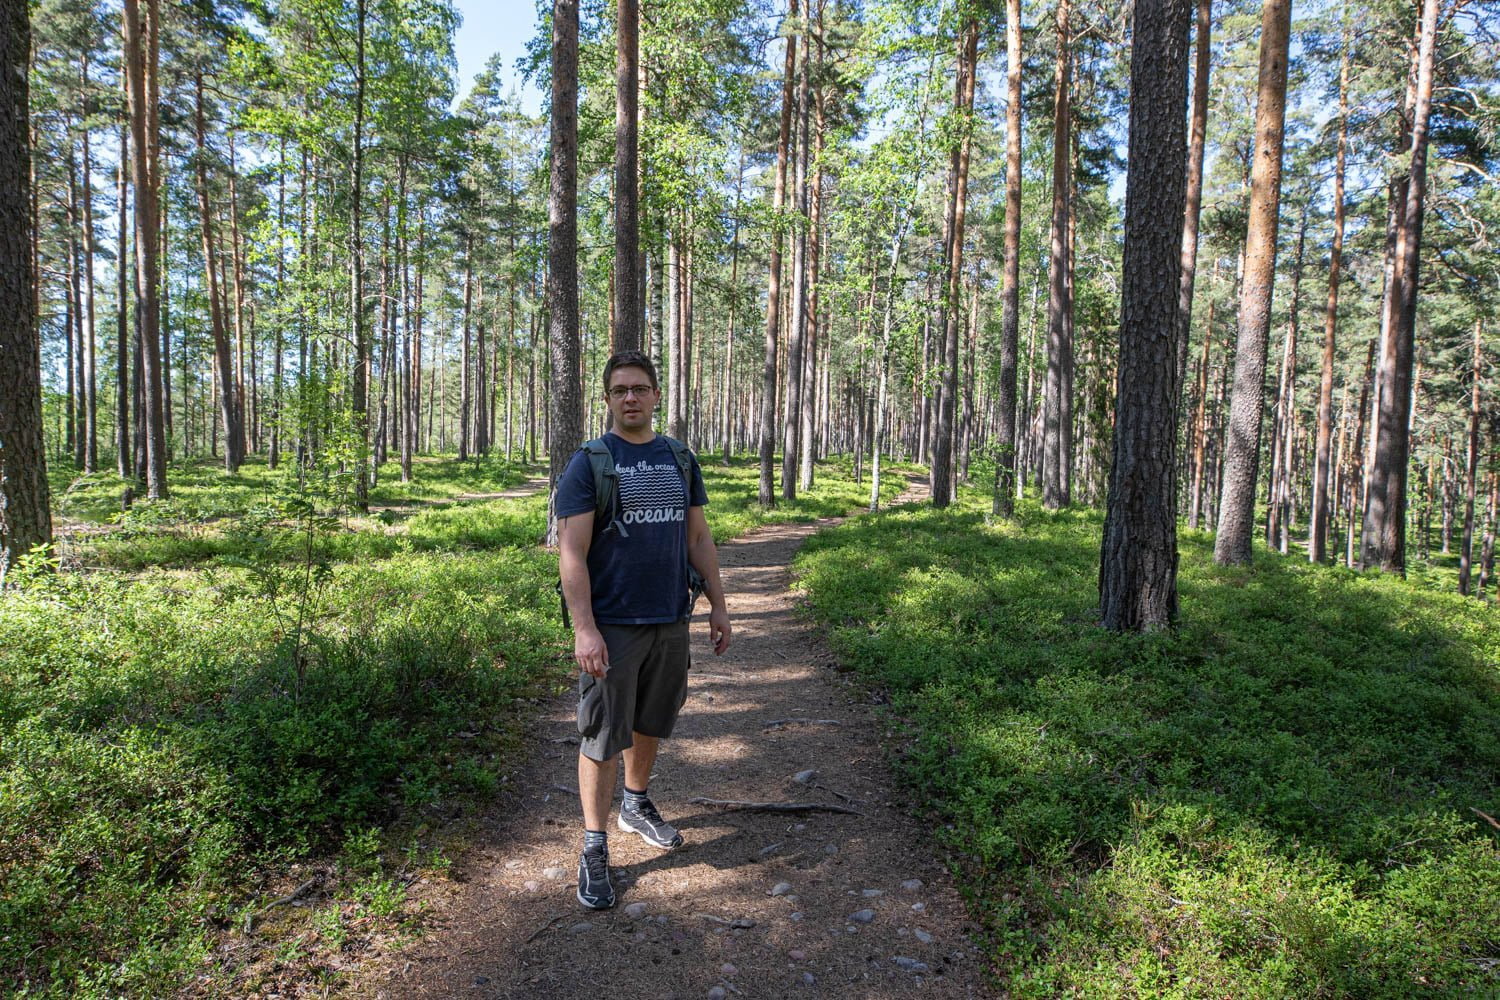 Stadsberget - A nice walk in the forest